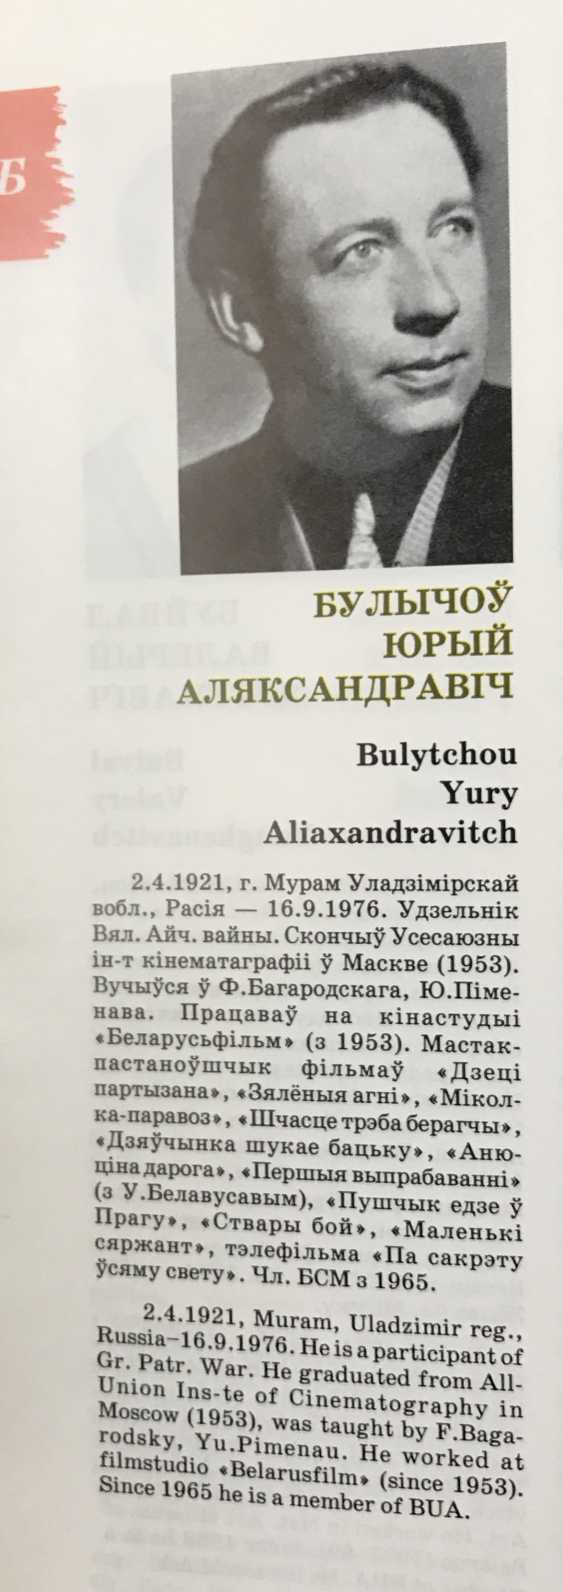 Bulychev Yu. a. Minsk, 1960 G. - photo 5